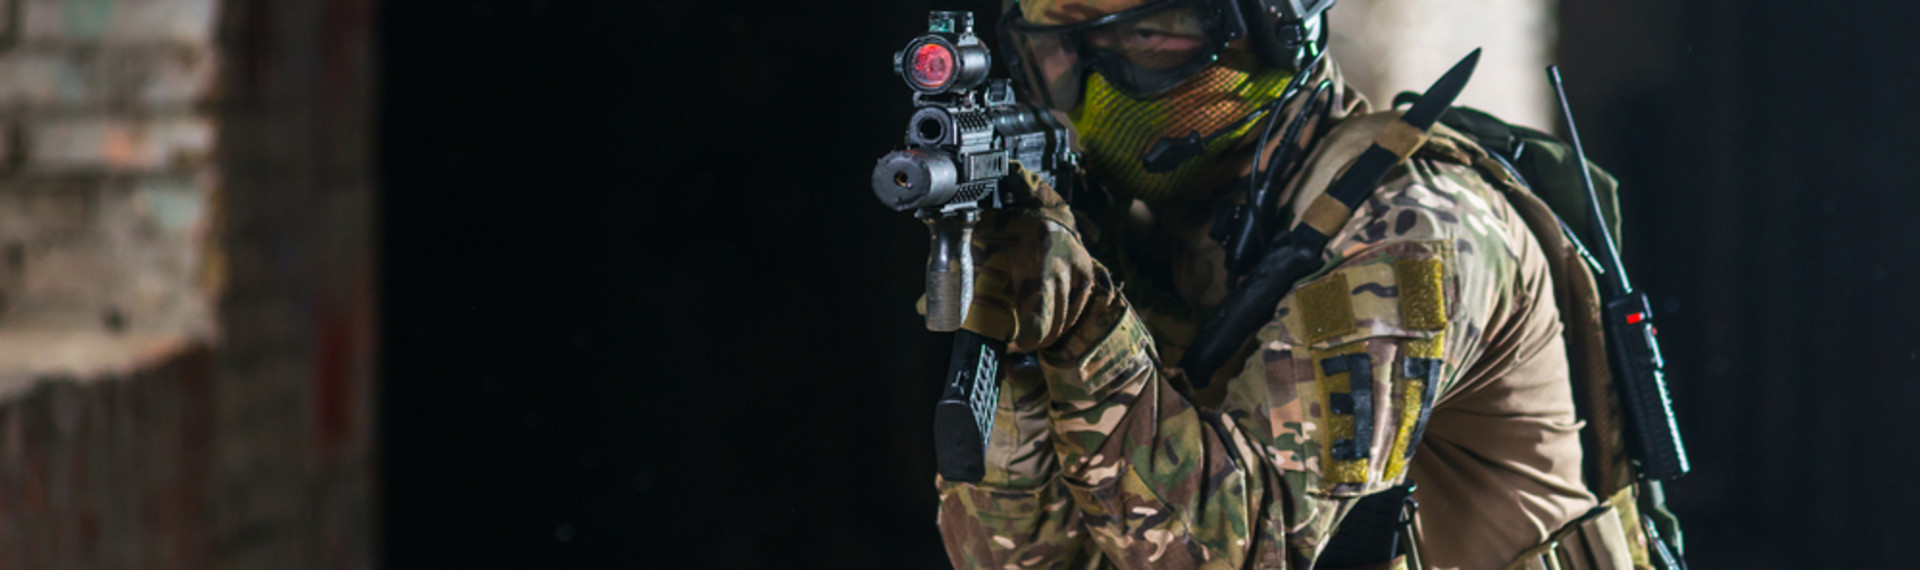 Copenhagen Paintball image